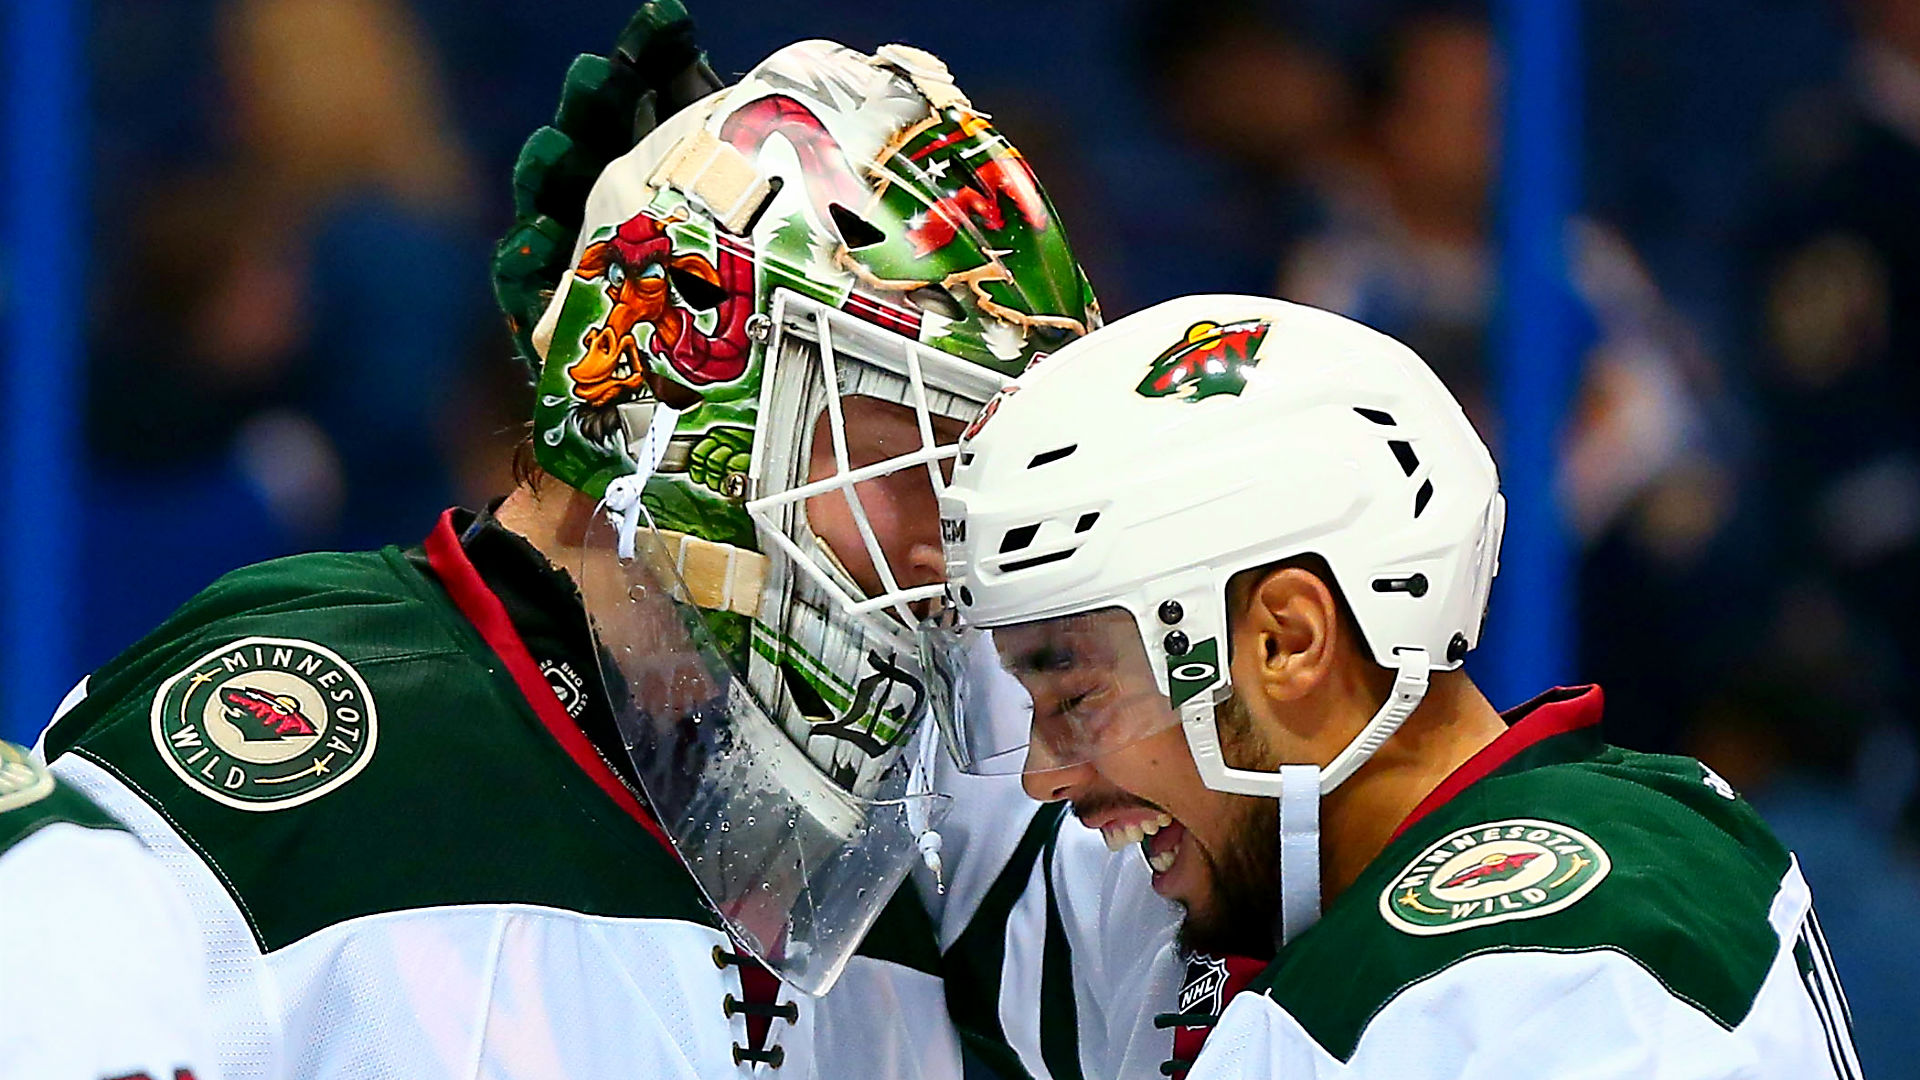 Stanley Cup playoffs: Wild seek 2-0 lead over Blues; 3 ET start